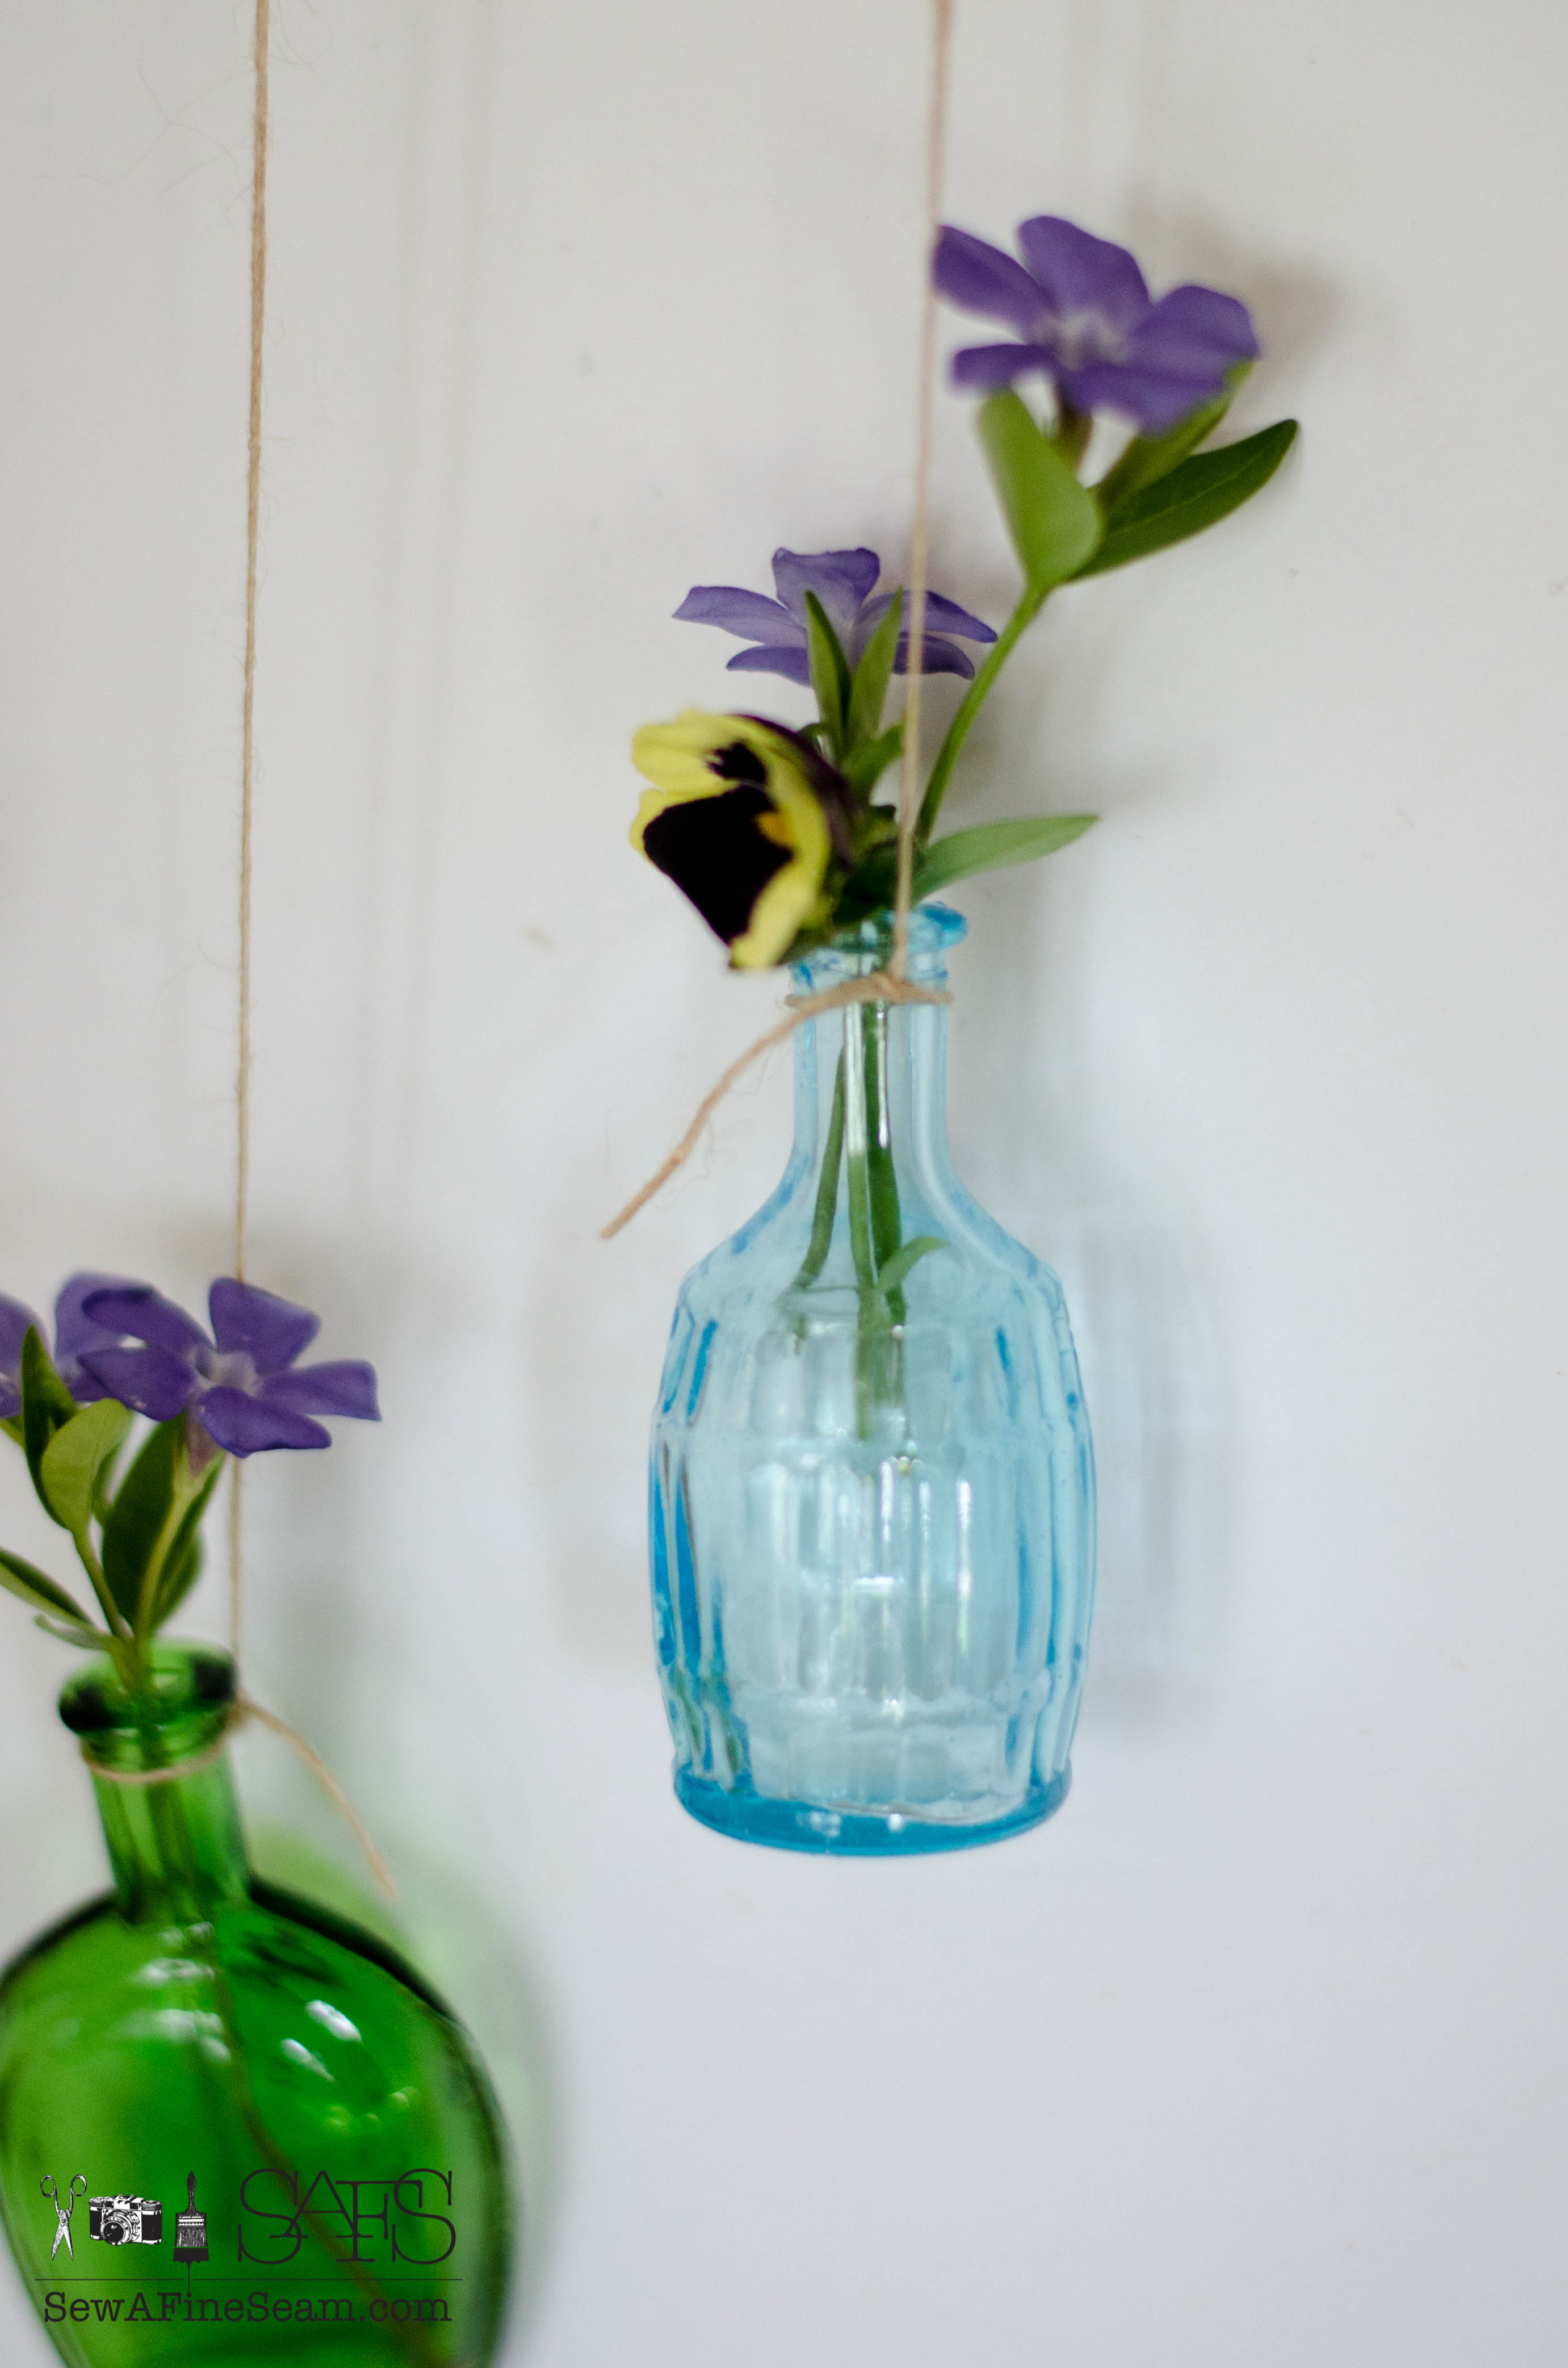 Flower vase made of tiny bottles sew a fine seam flower vases from tiny bottles in blue green and yellow reviewsmspy